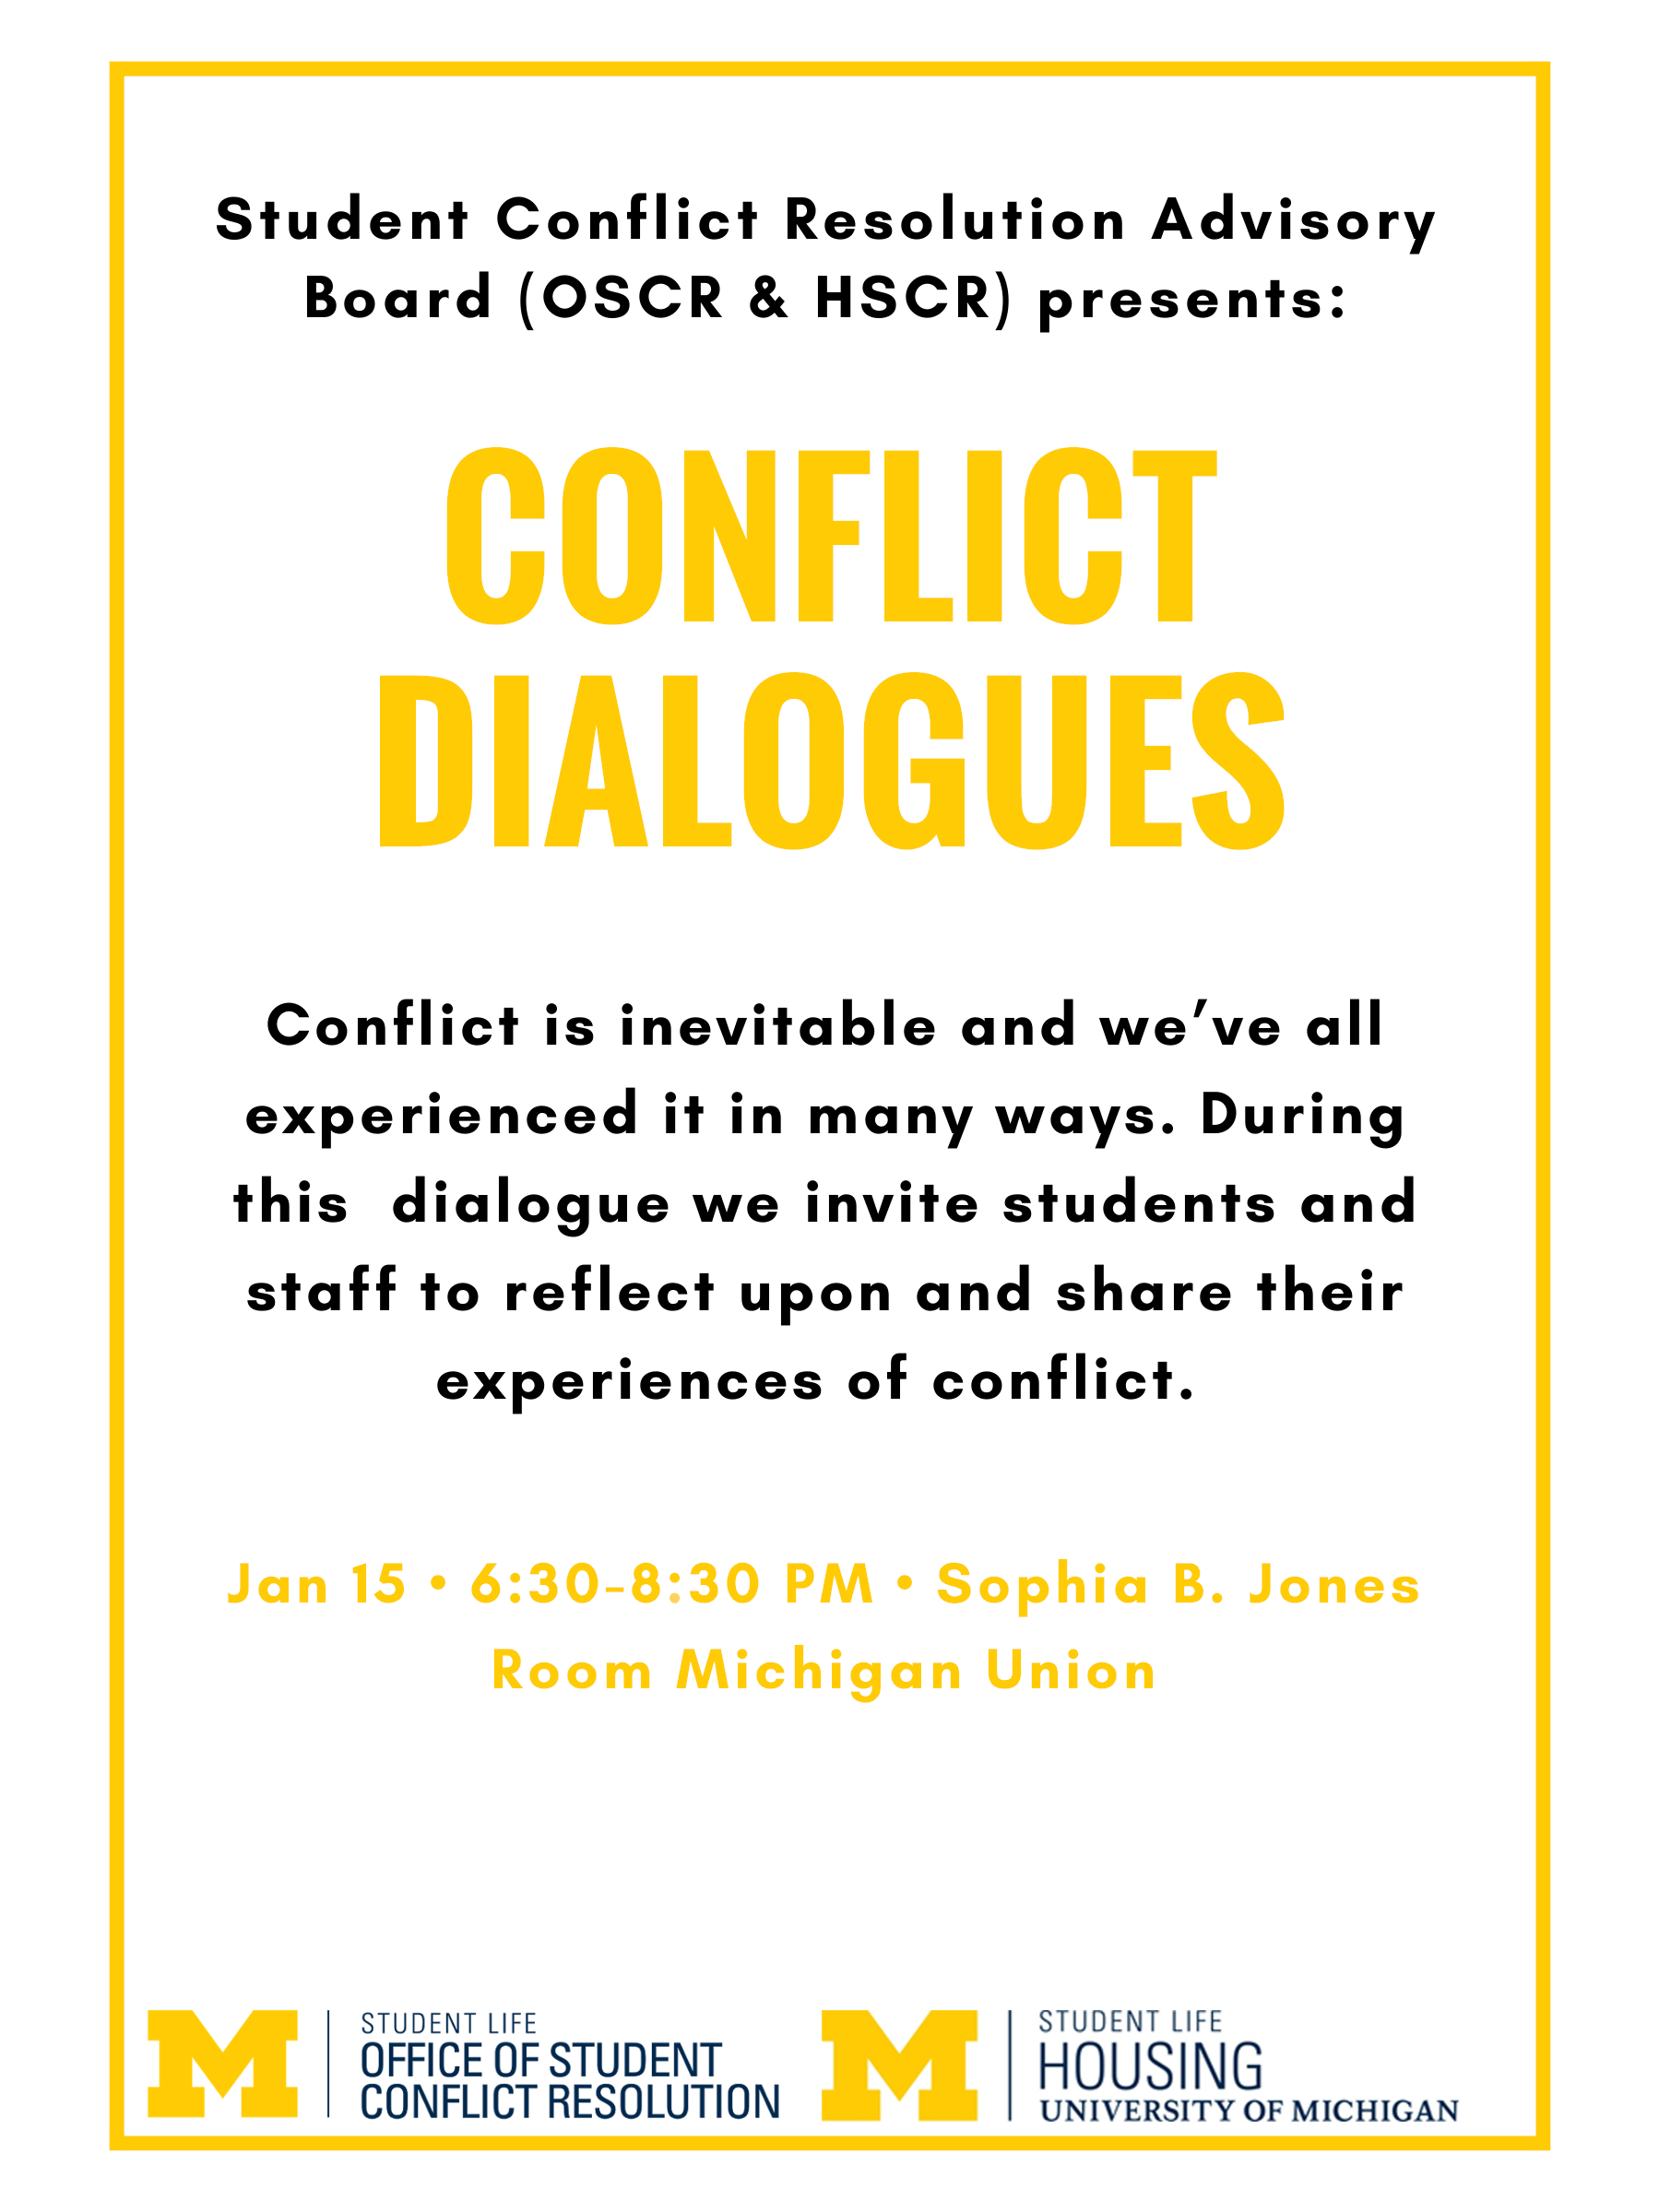 Conflict is inevitable and we've all experienced it in many ways. During this dialogue we invite students and staff to reflect upon and share their experiences of conflict.